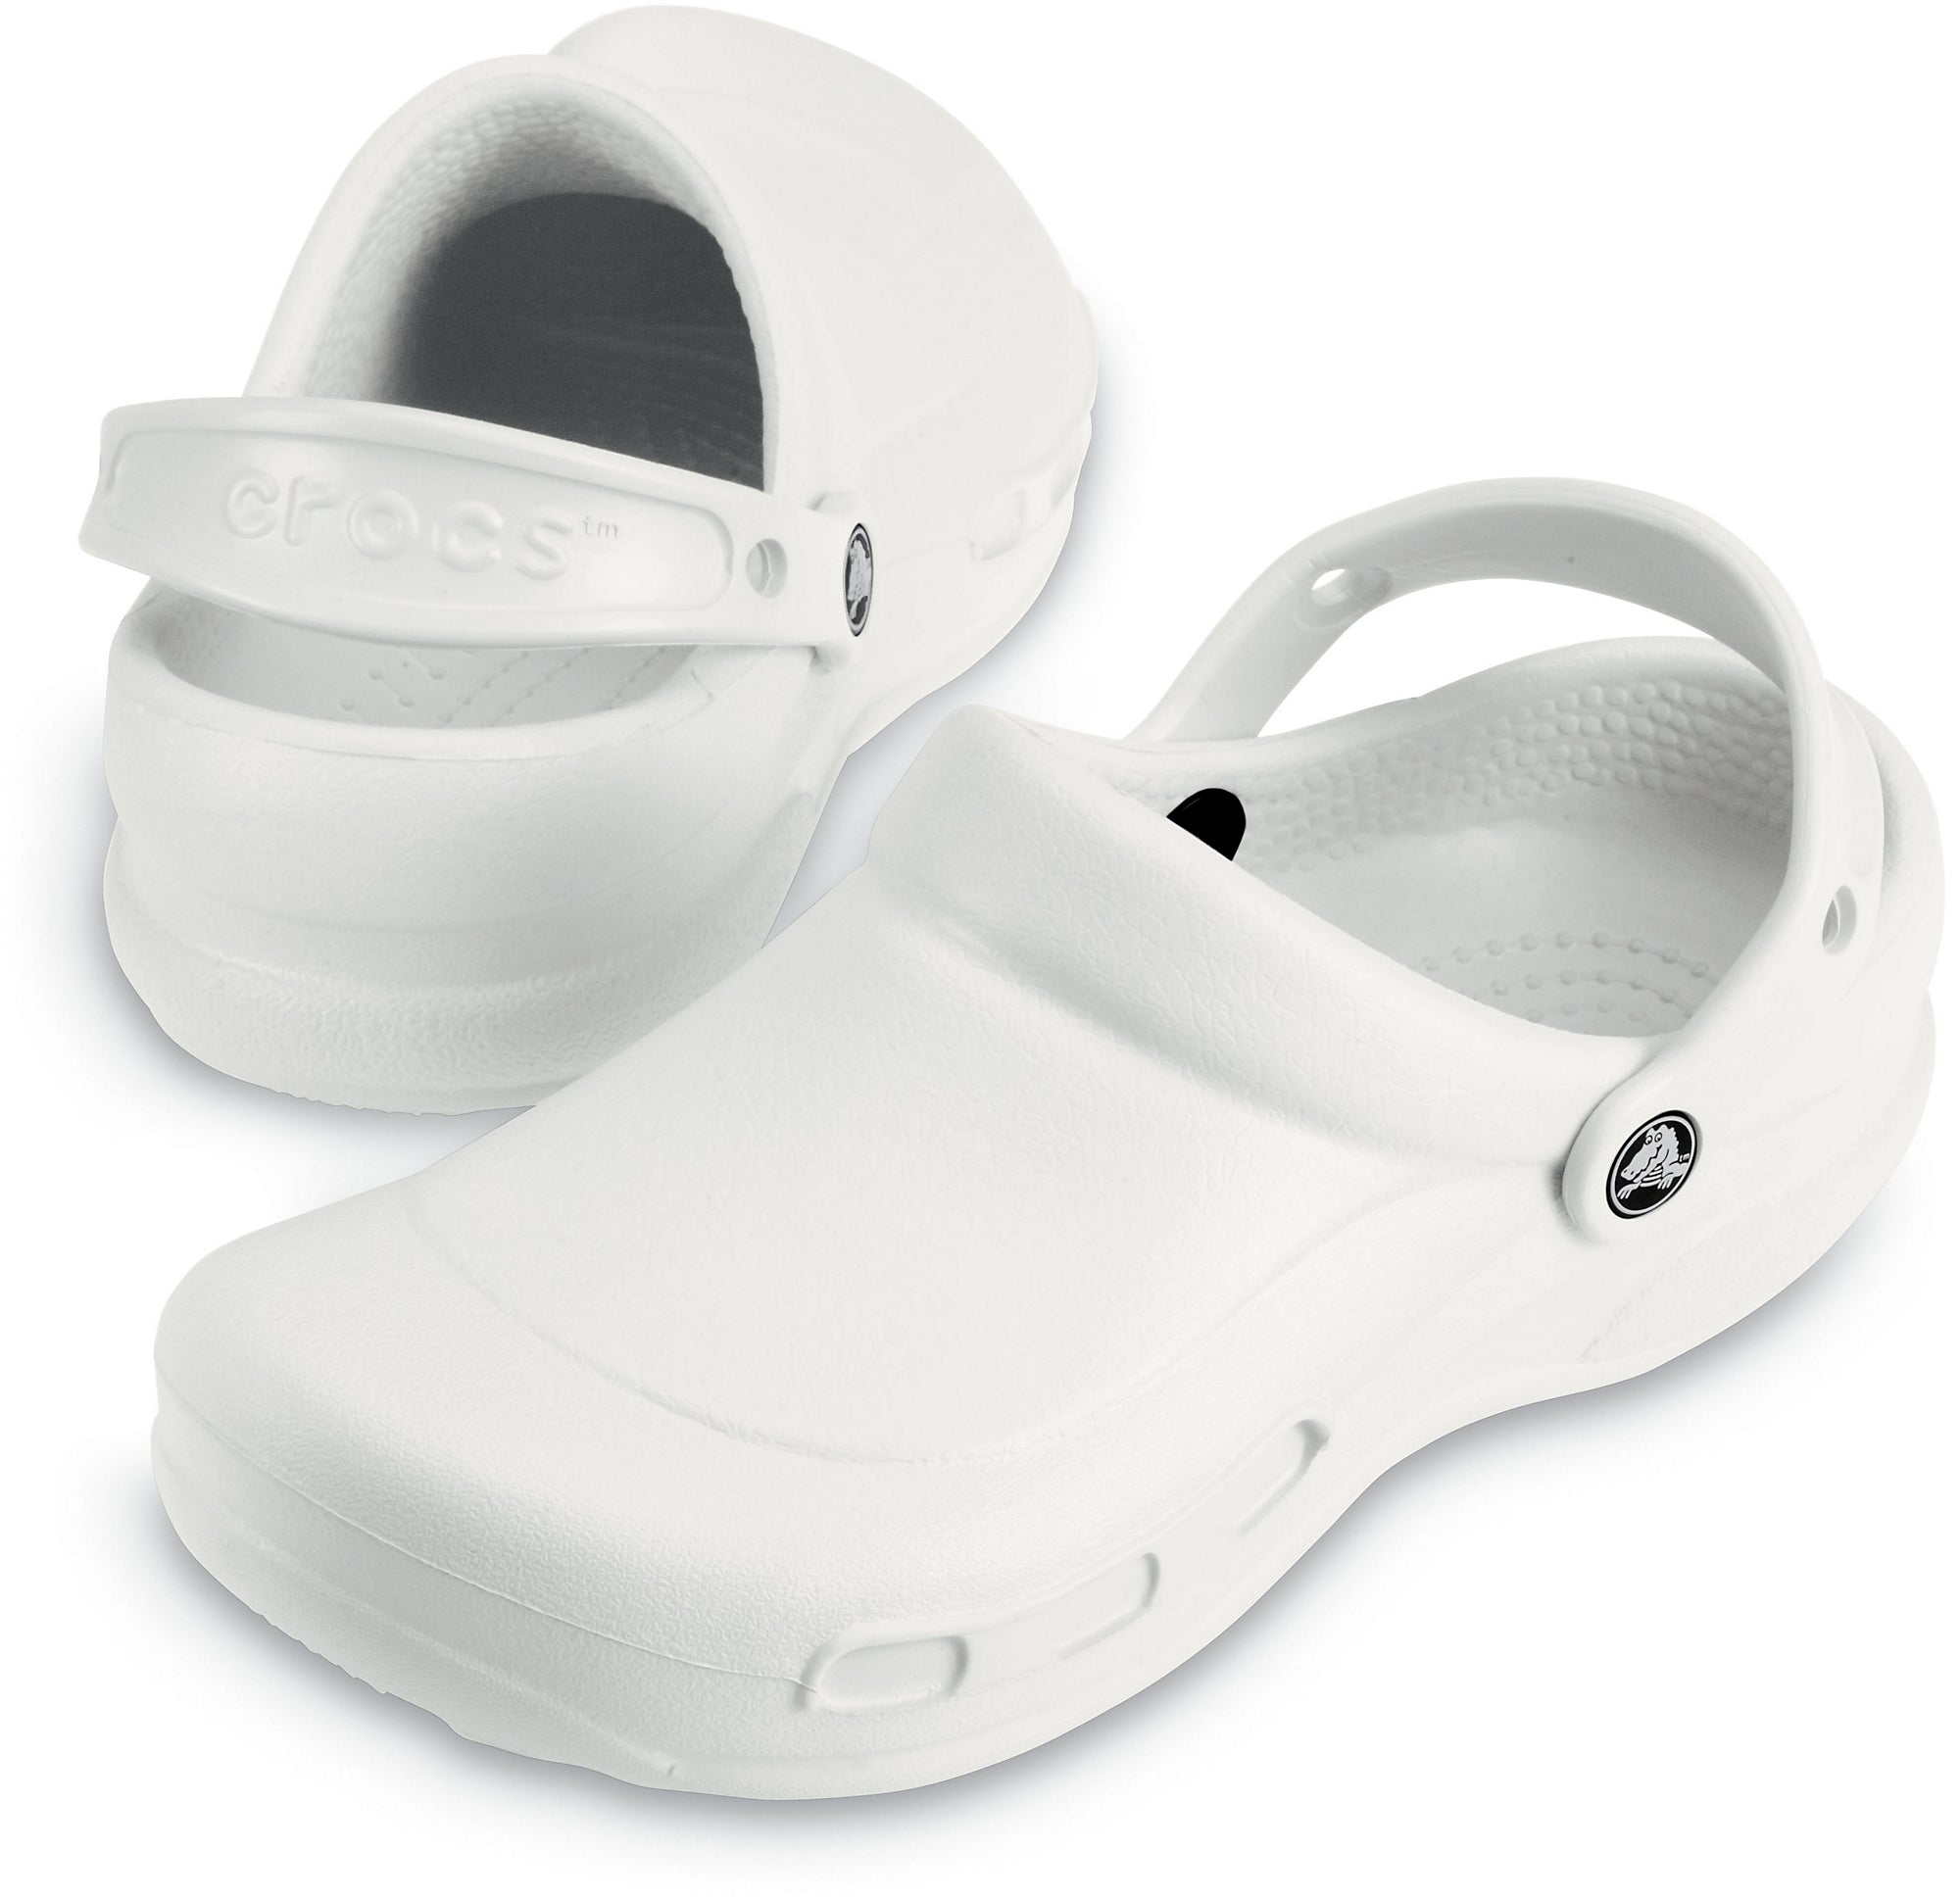 SALE - Crocs At Work Specialist Clog - White 10073-100